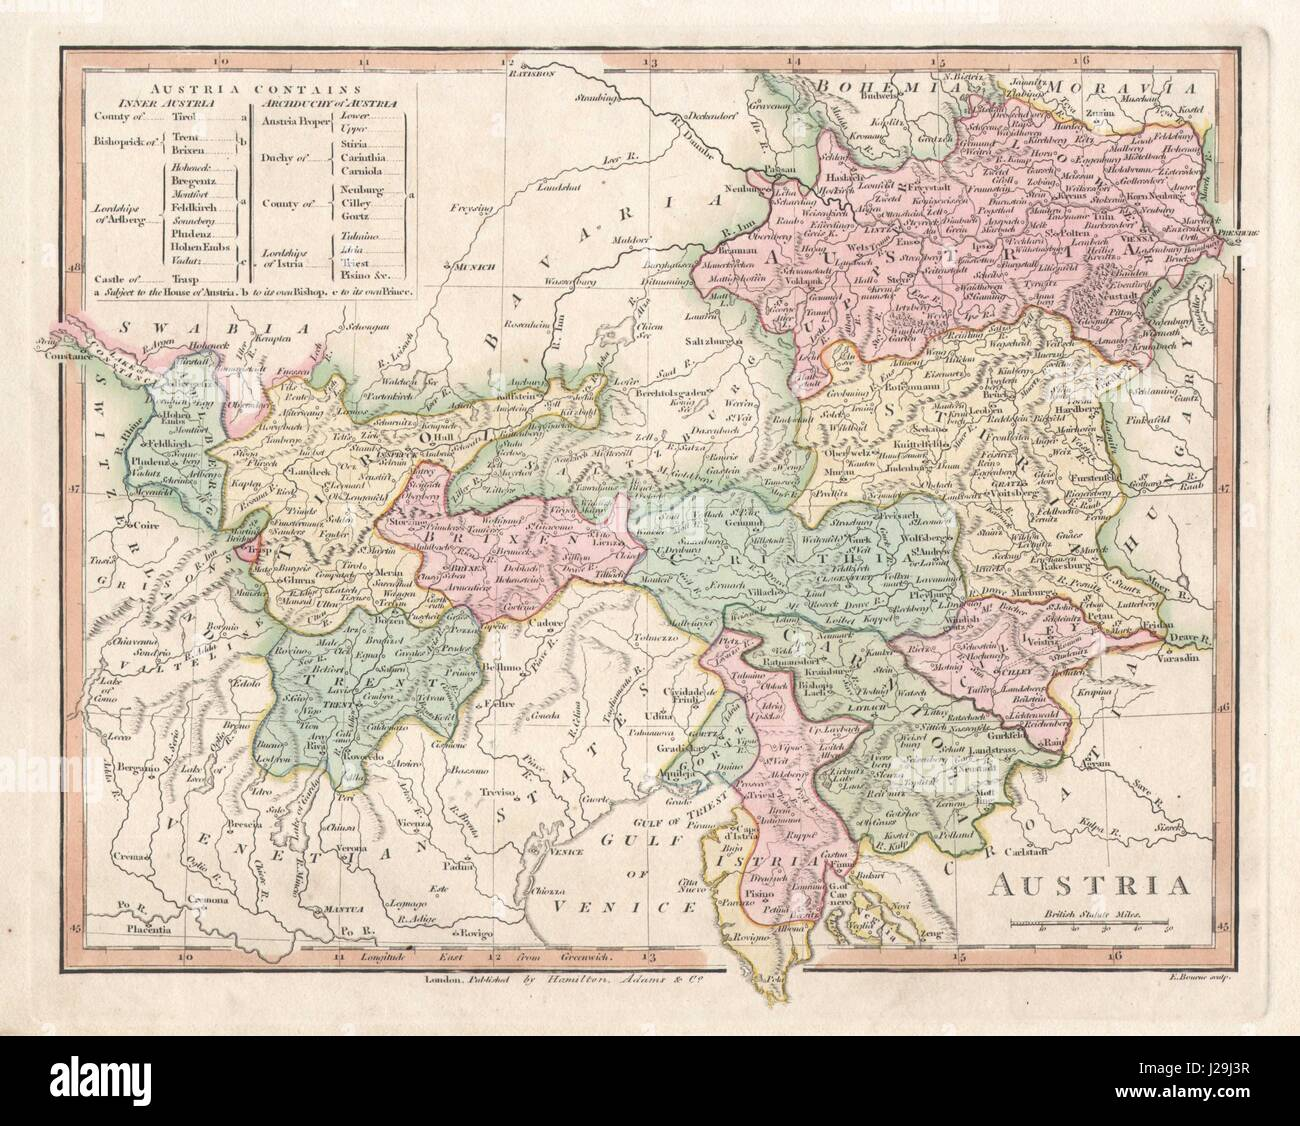 Austria Map Old Stock Photos Austria Map Old Stock Images Alamy - Robert wilkinson map of the us